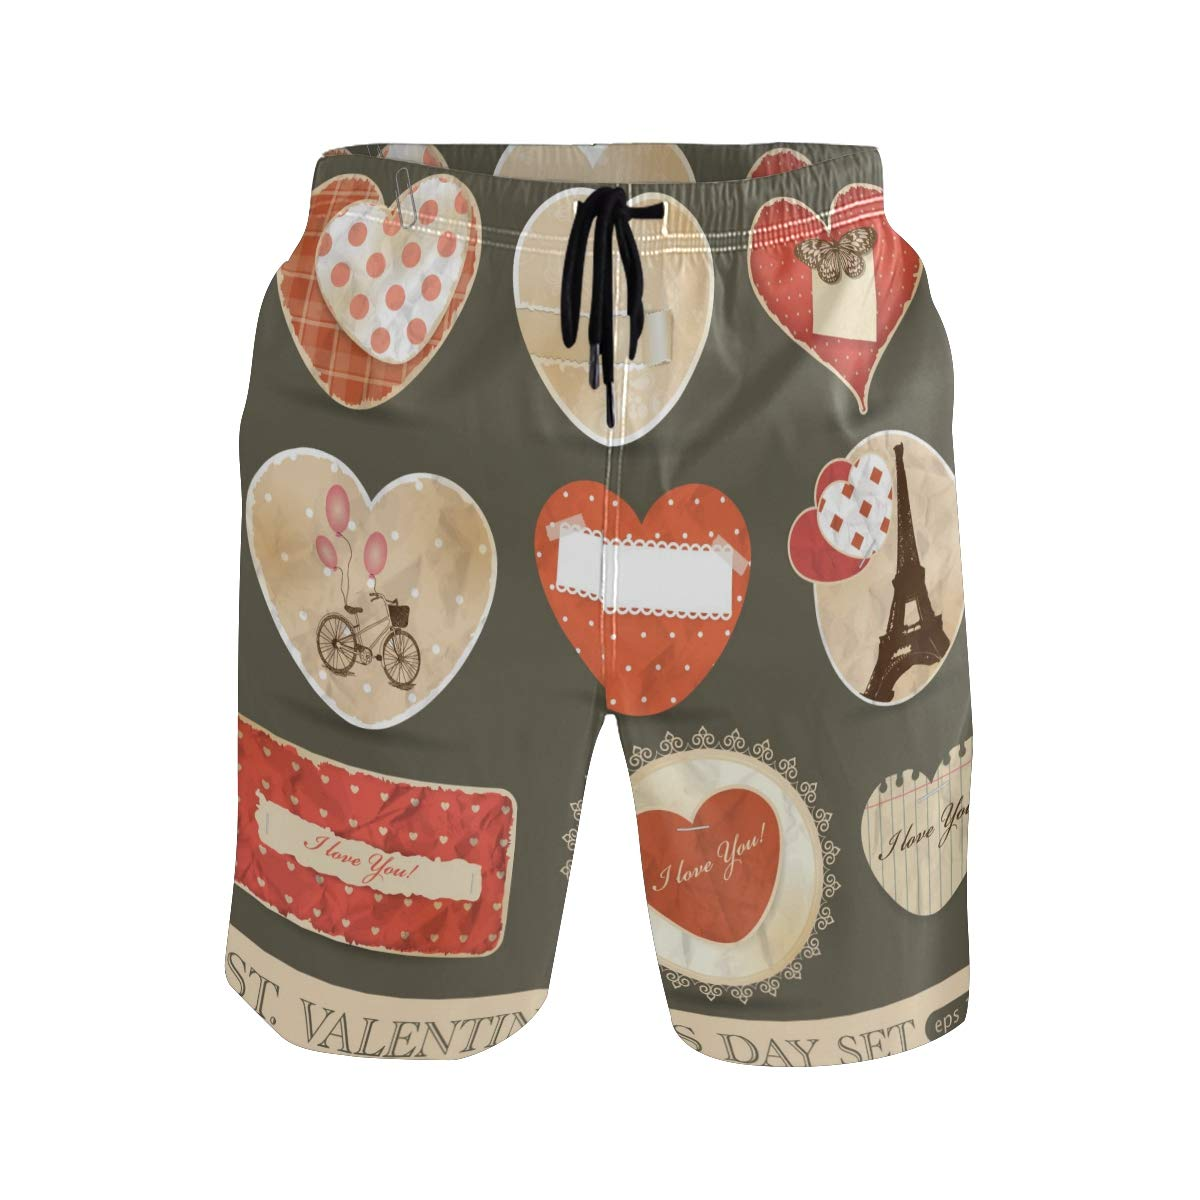 Mens Beach Swim Trunks Happy Heart Dots Bicycle Insect Love Boxer Swimsuit Underwear Board Shorts with Pocket